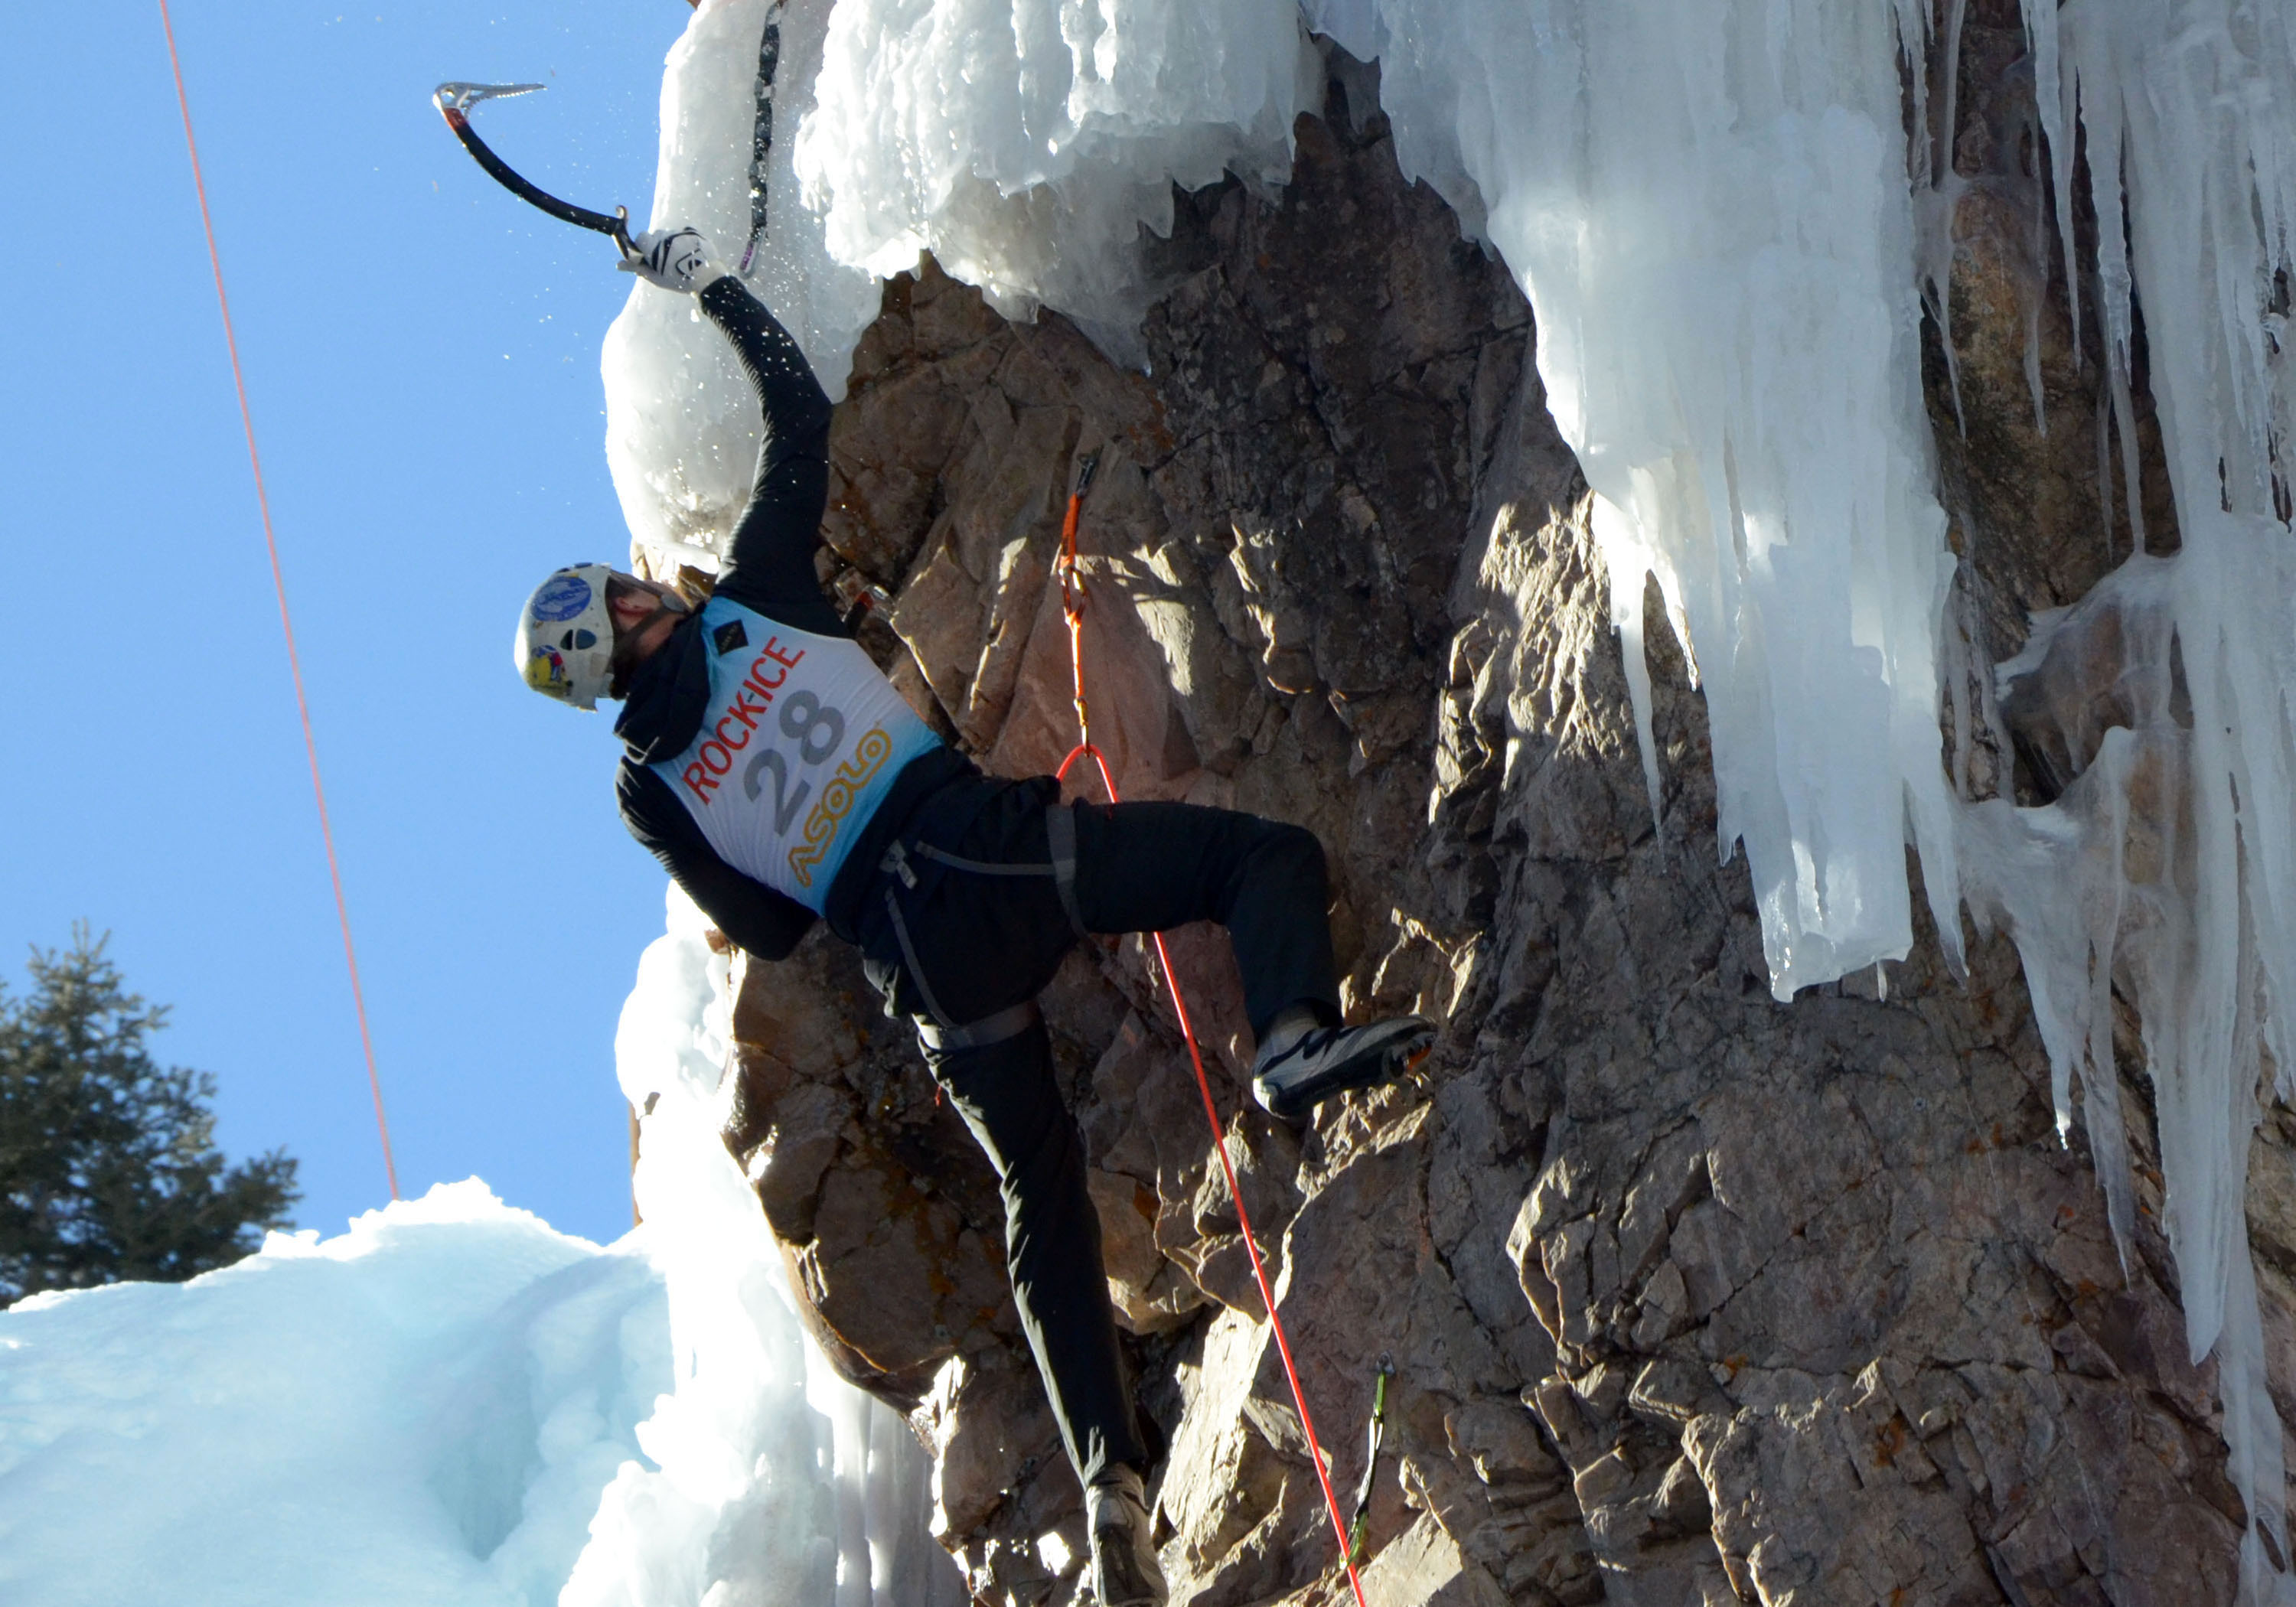 Ouray Ice Festival 2015: Phil Wortmann